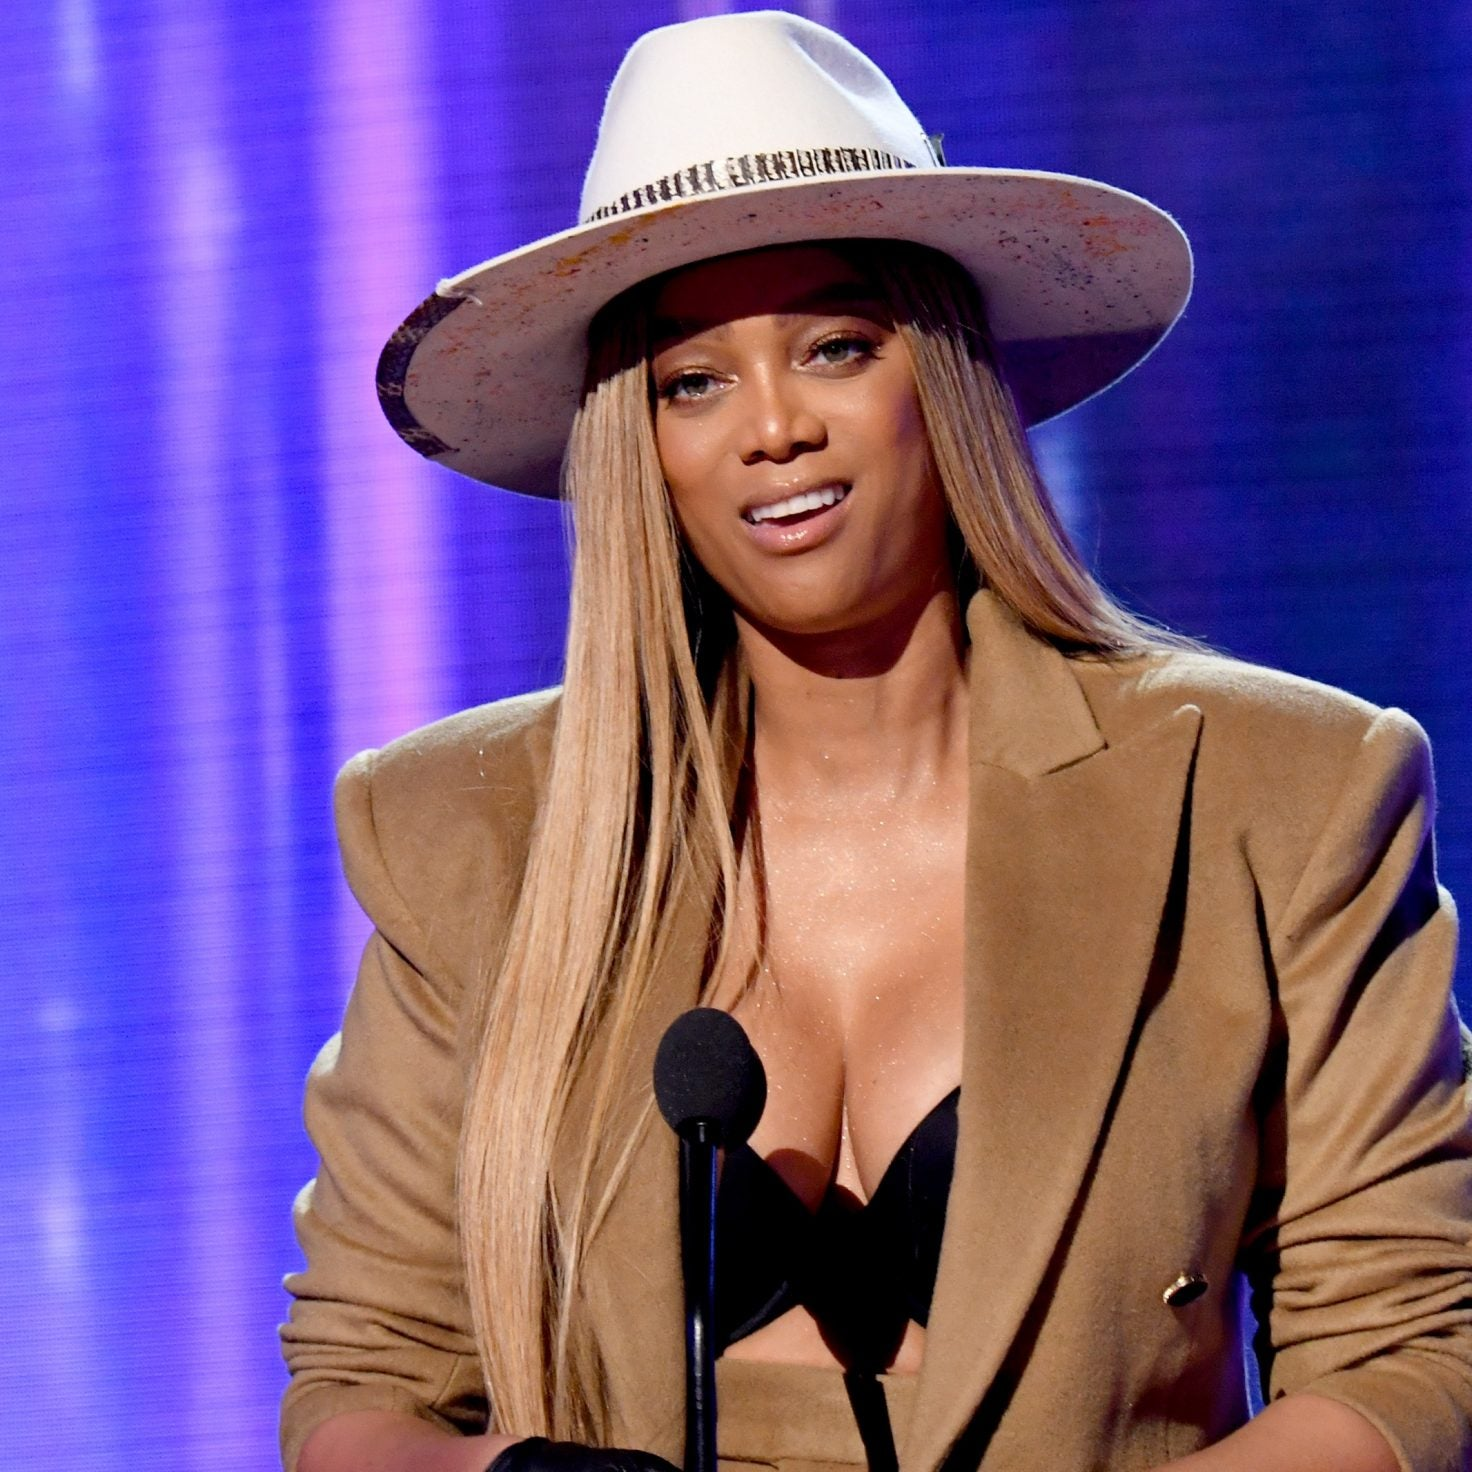 Tyra Banks Admits She Made 'Really Off Choices' In Resurfaced 'America's Next Top Model' Clips